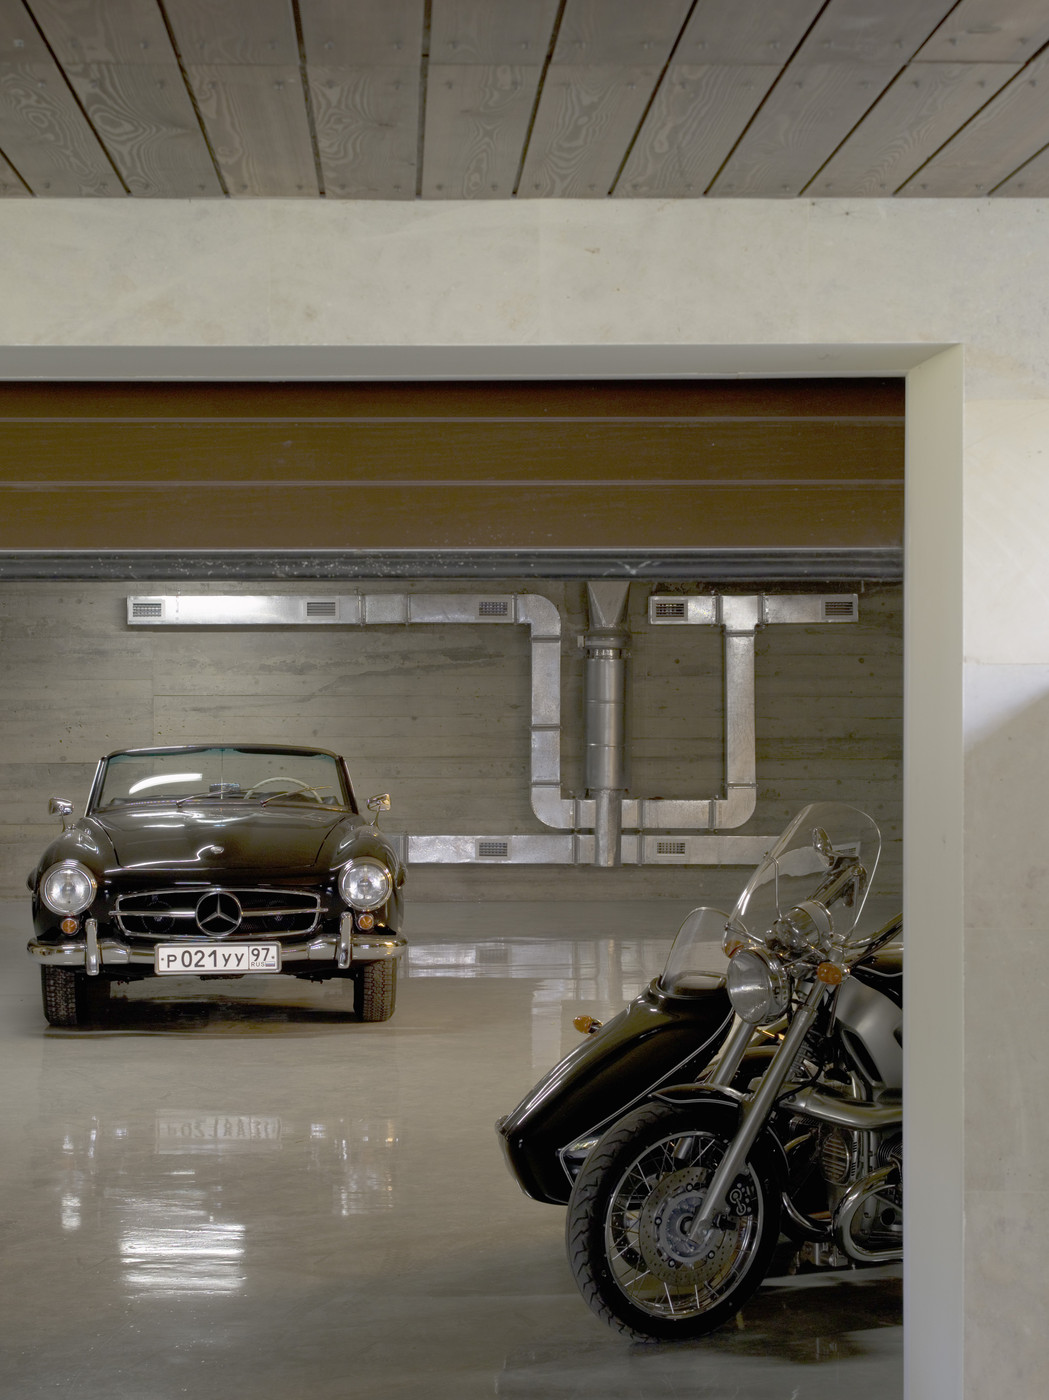 Exposed ductwork photos 10 of 11 for Garage mercedes gap